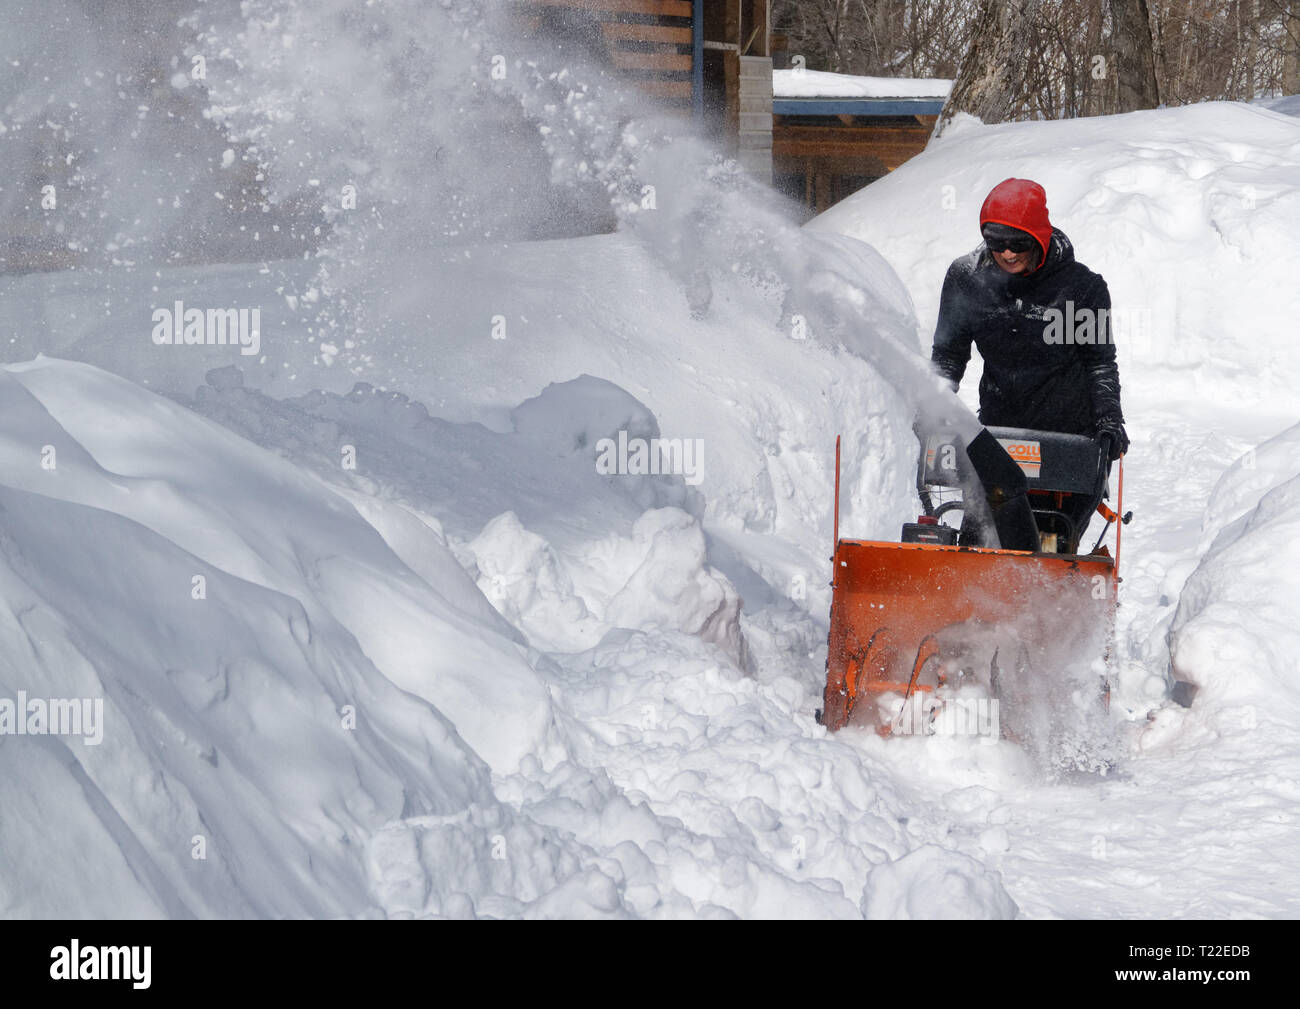 a-woman-using-a-snow-blower-to-clear-snow-from-her-garden-in-quebec-winter-2018-2019-saw-very-heavy-snowfall-T22EDB.jpg